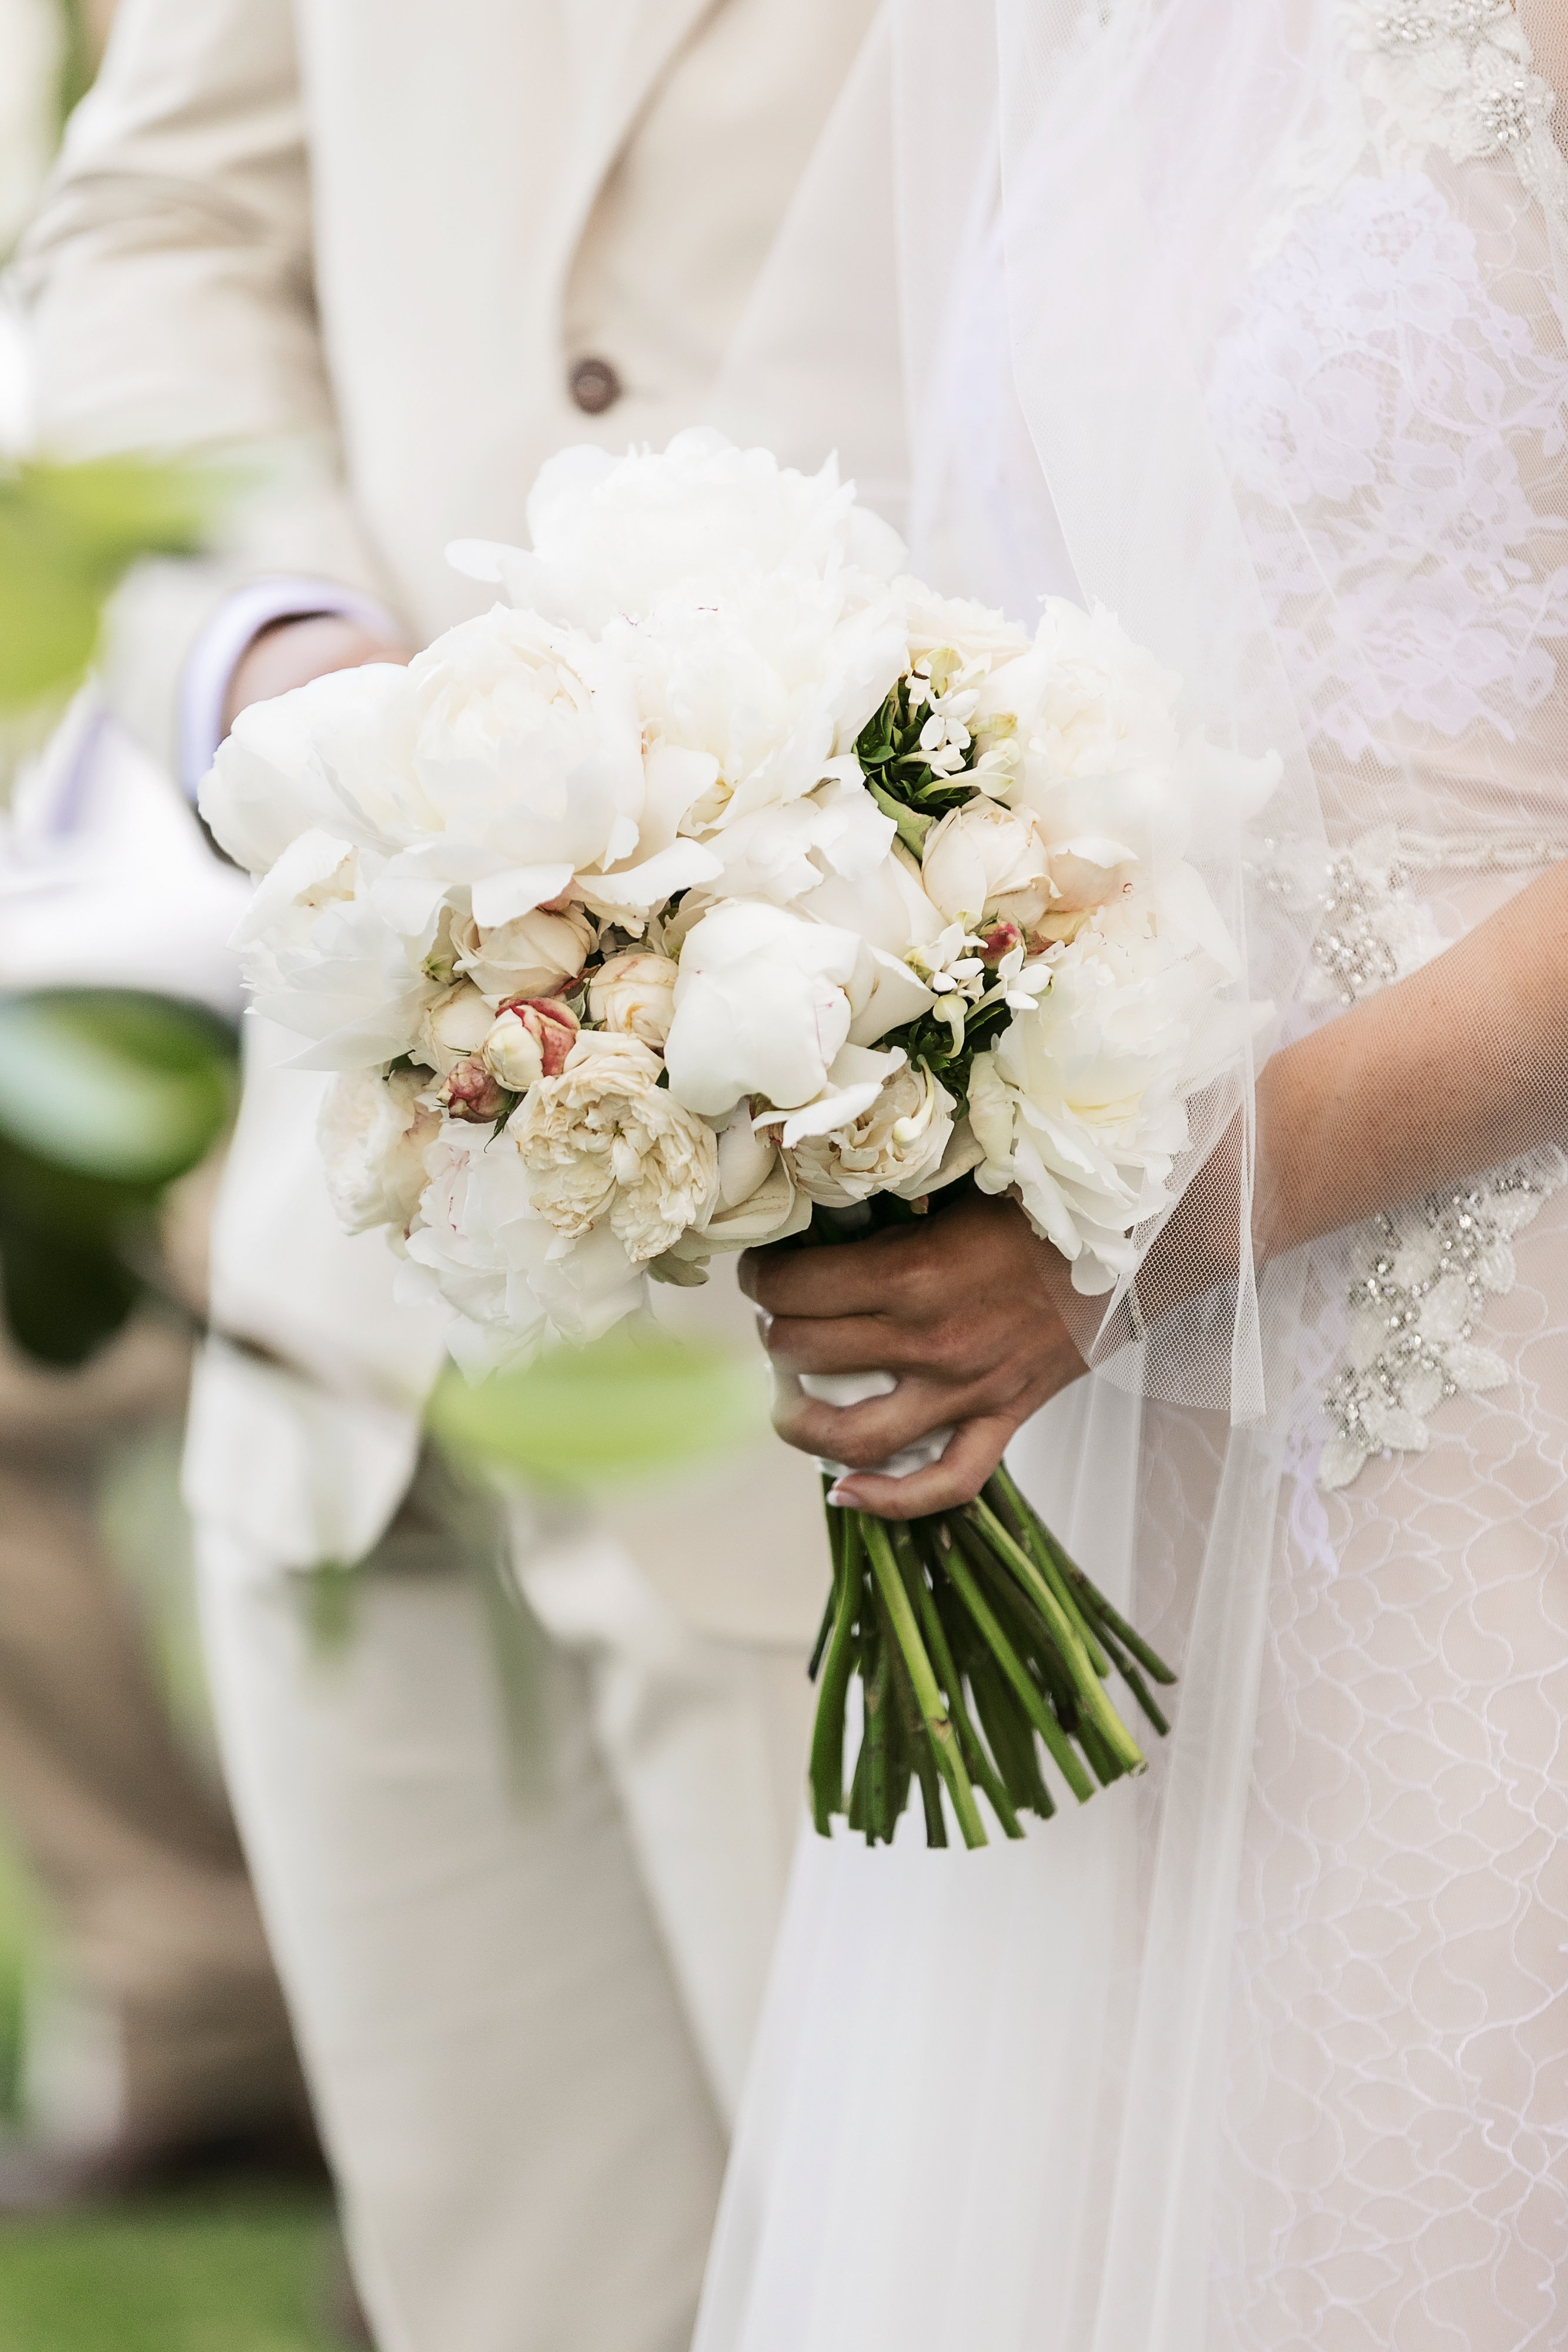 White wedding bouquet of peonies and David Austin roses